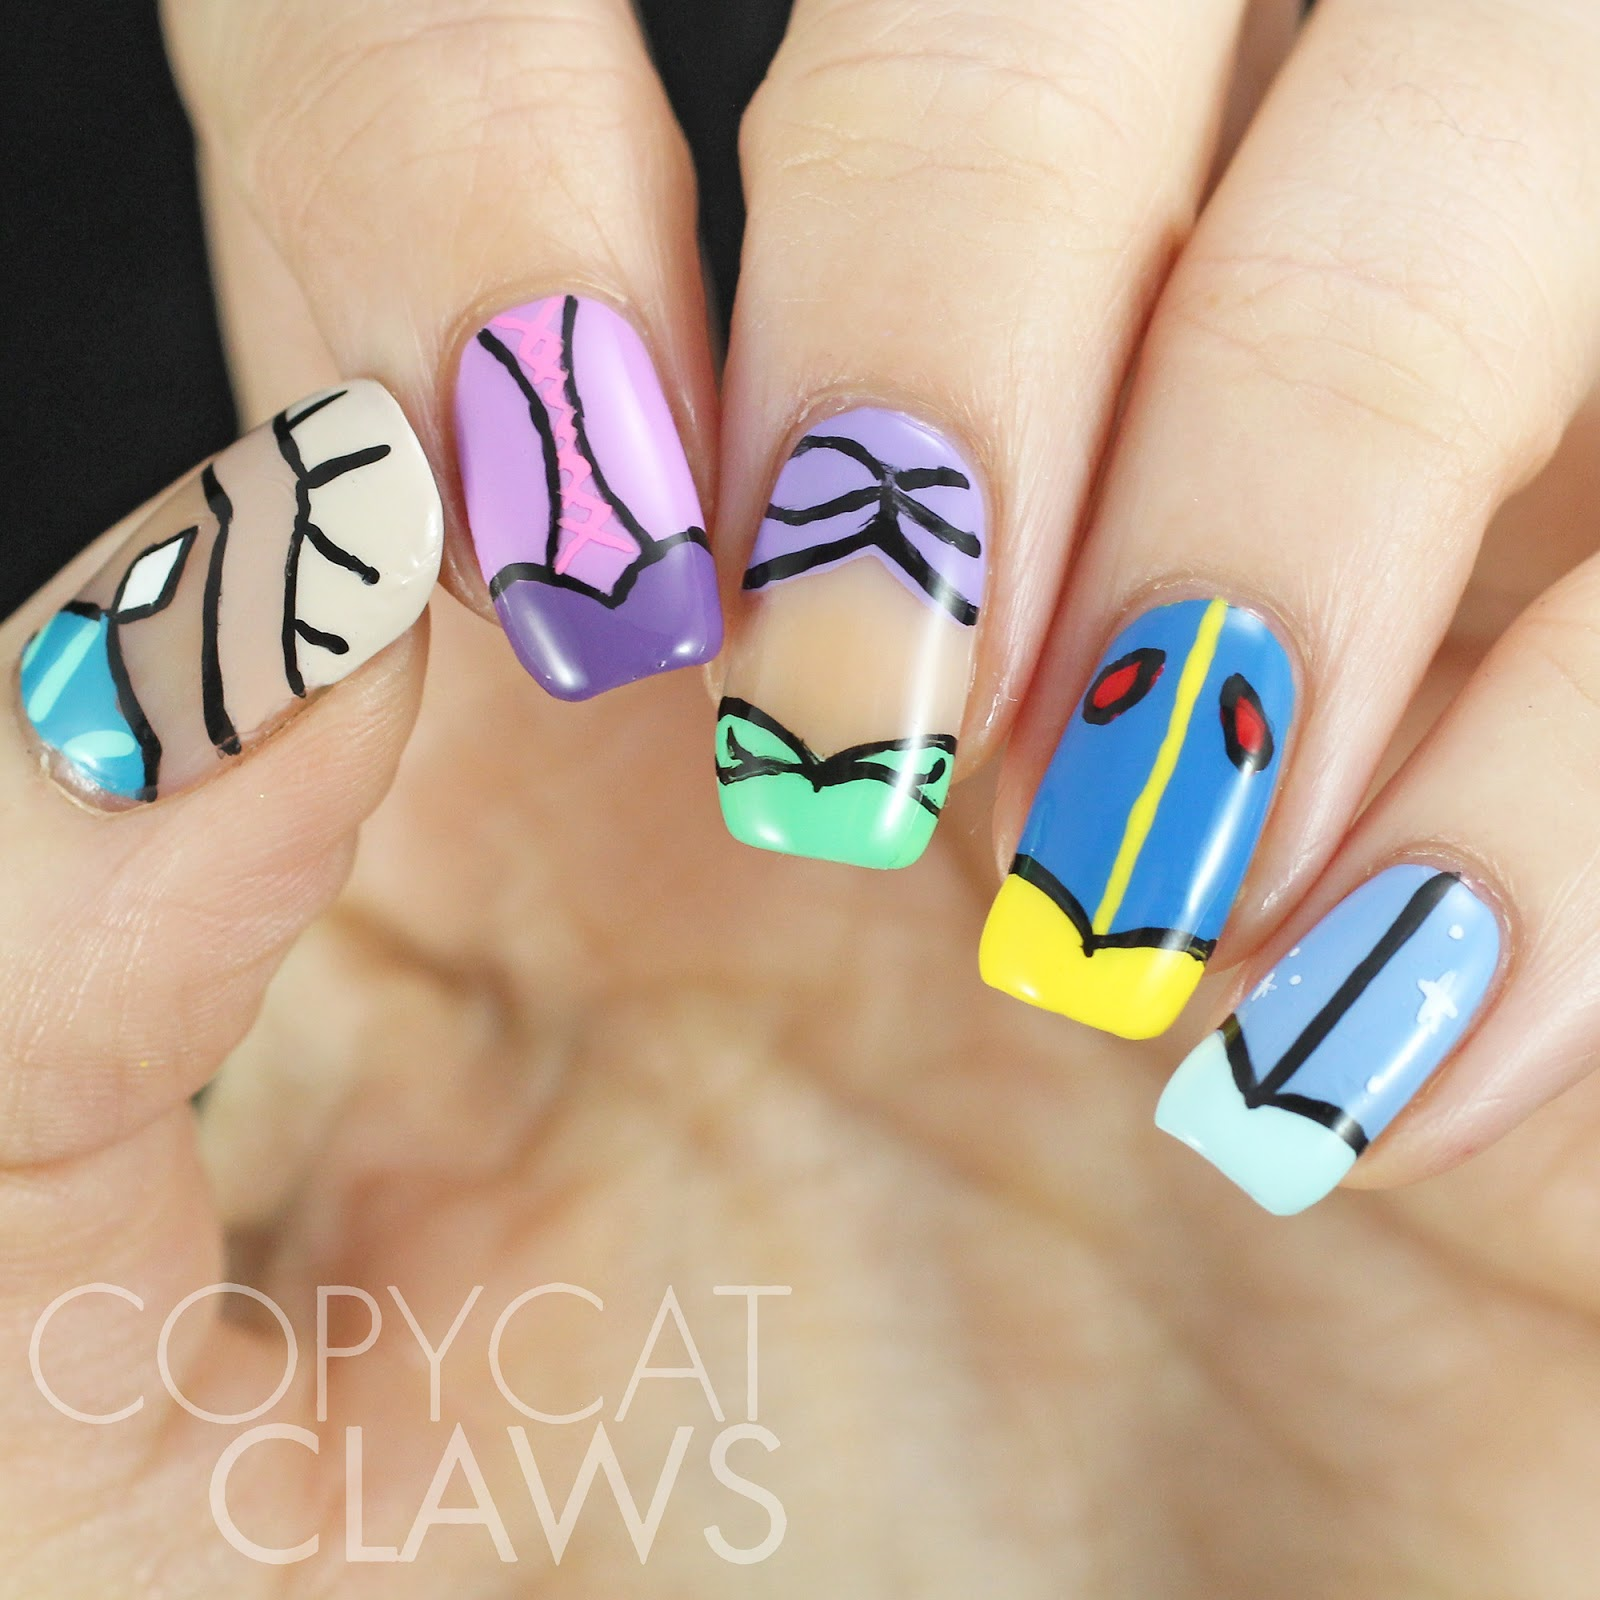 Copycat Claws Blue Color Block Nail Art: Copycat Claws: The Digit-al Dozen Does Fairy Tales: Day 2